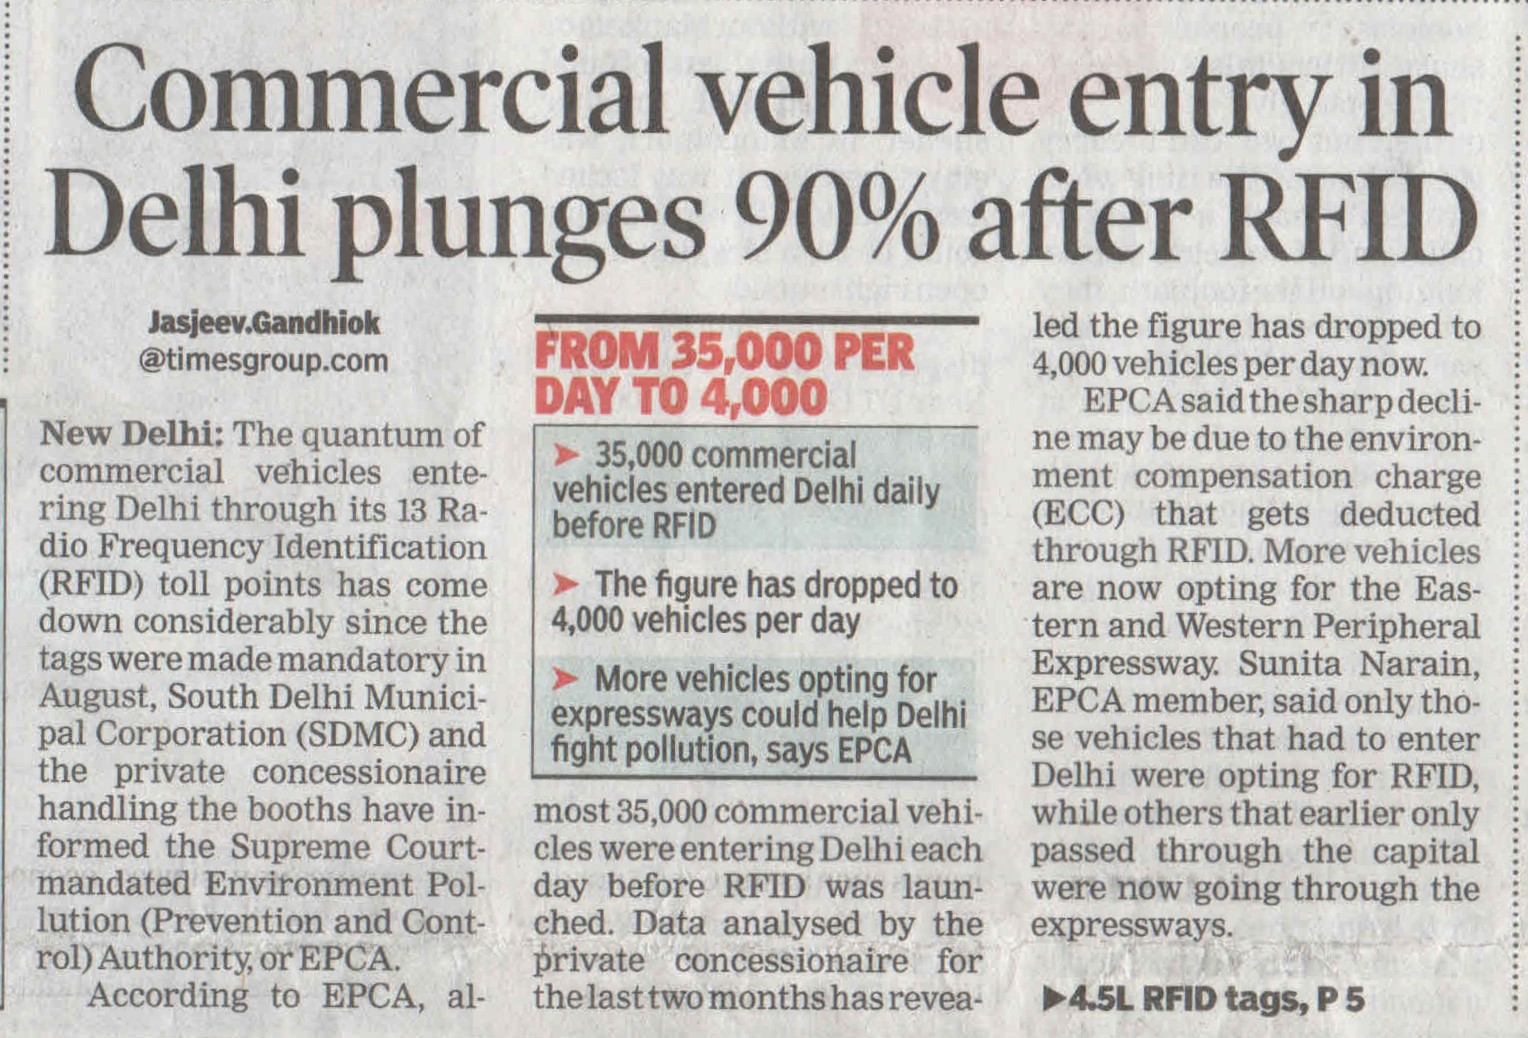 Commercial vehicles entry in Delhi plunges 90% after RFID